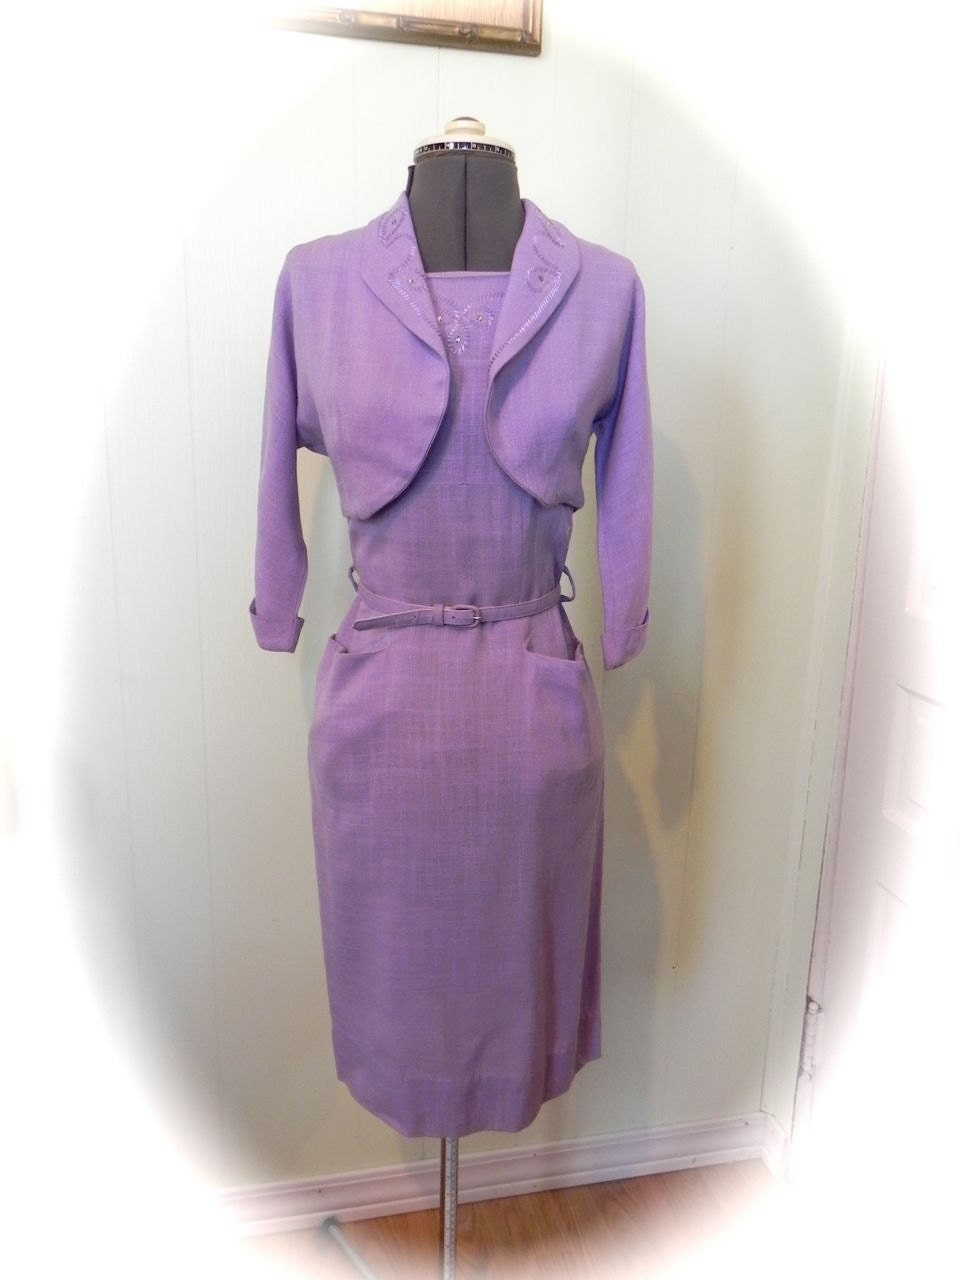 Smashing Vintage 50s Lavender Dress And Bolero Jacket Set Sm - maybel57